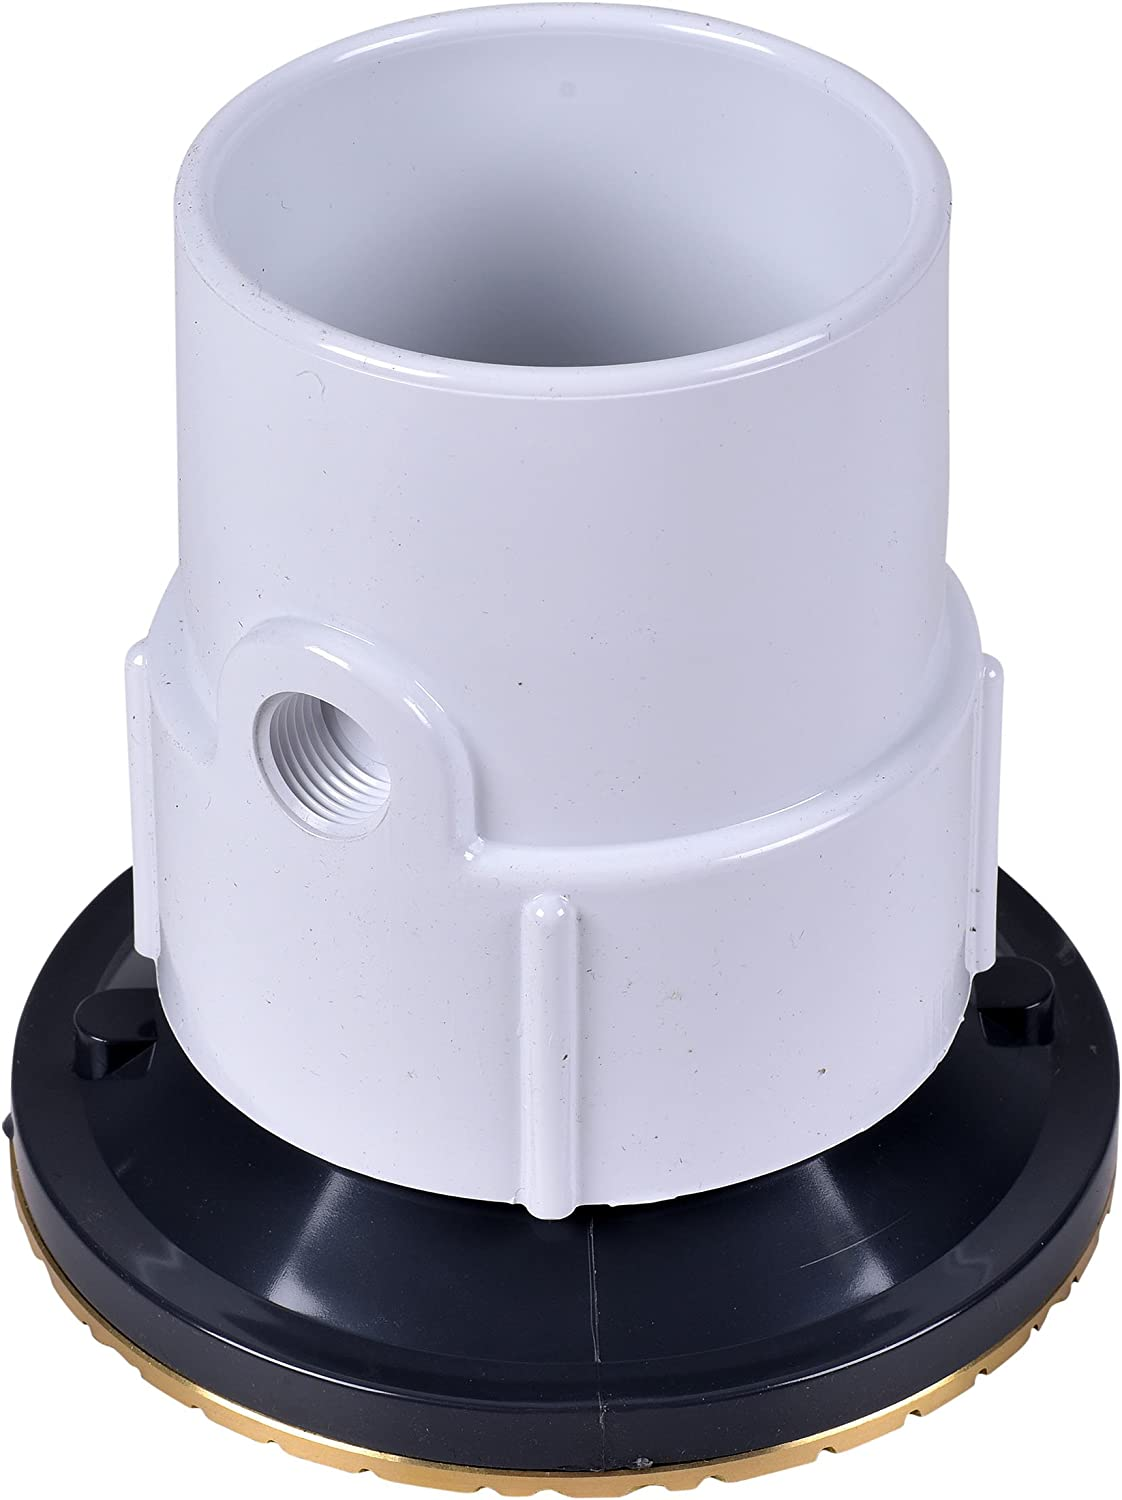 Oatey 84212 ABS Adjustable Commercial Cleanout with 6-Inch Cast BR Cover and Round Top 2-Inch